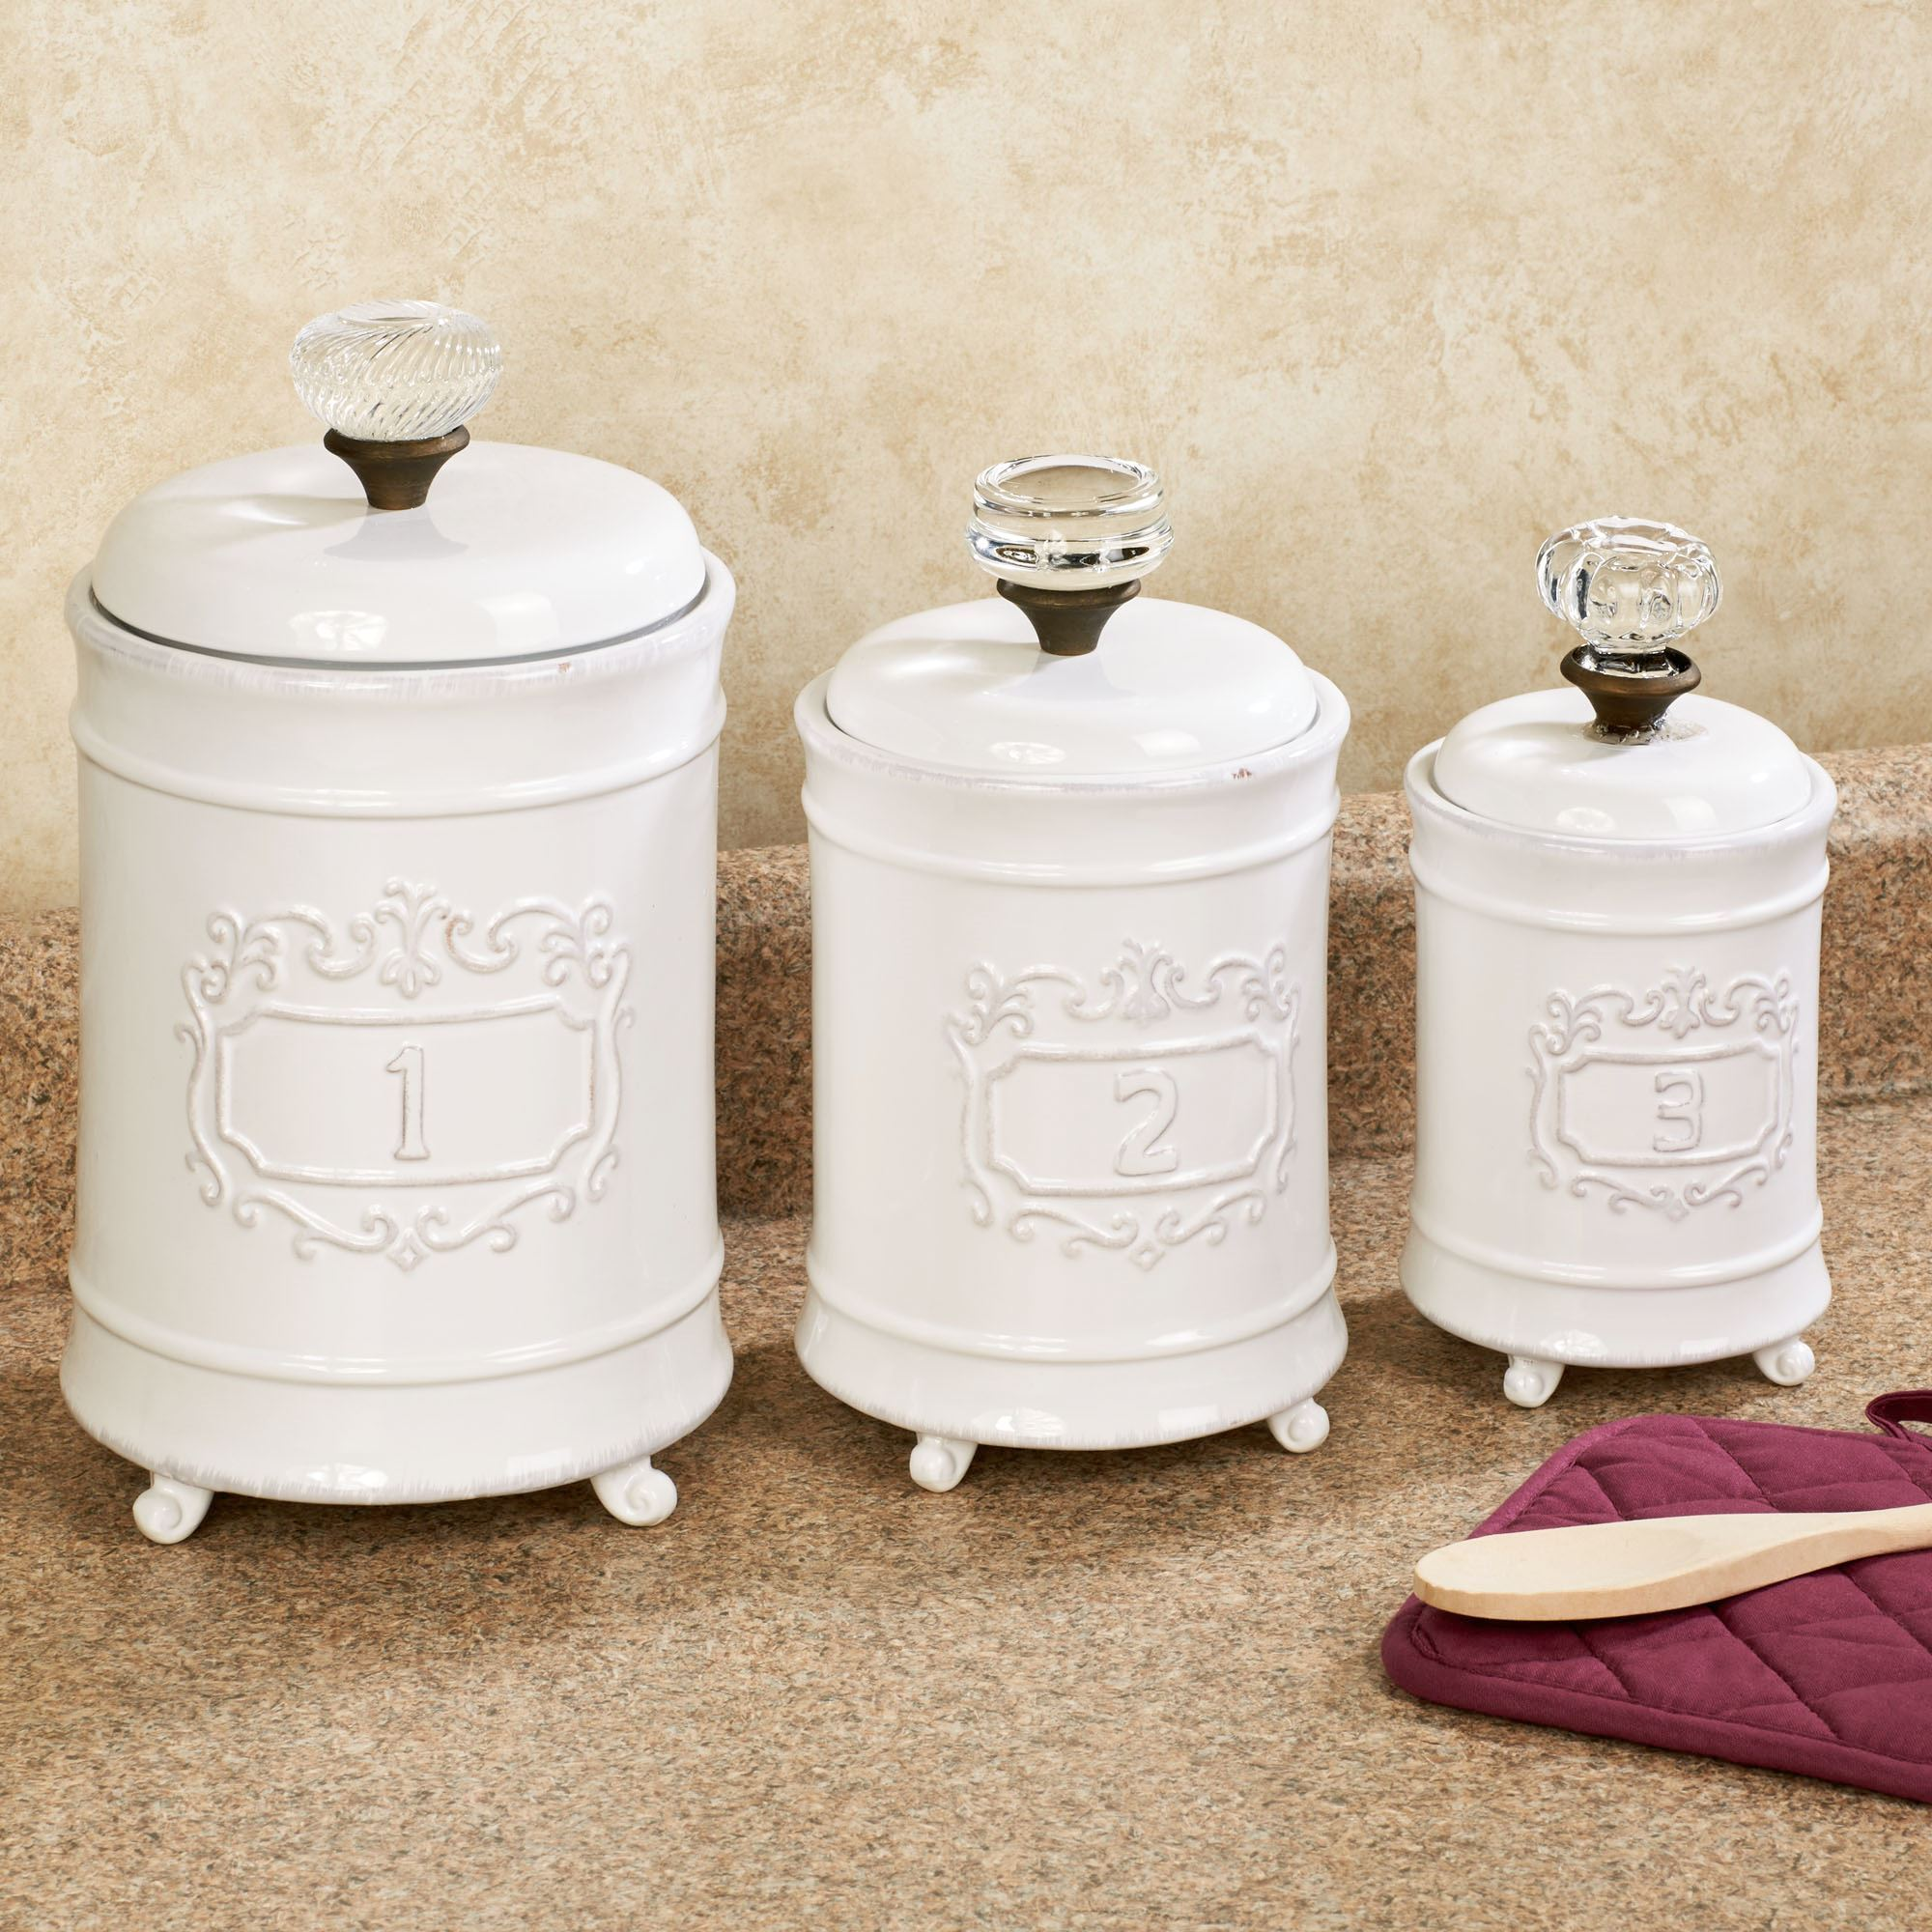 canisters kitchen paint suggestions for circa white ceramic canister set touch to zoom